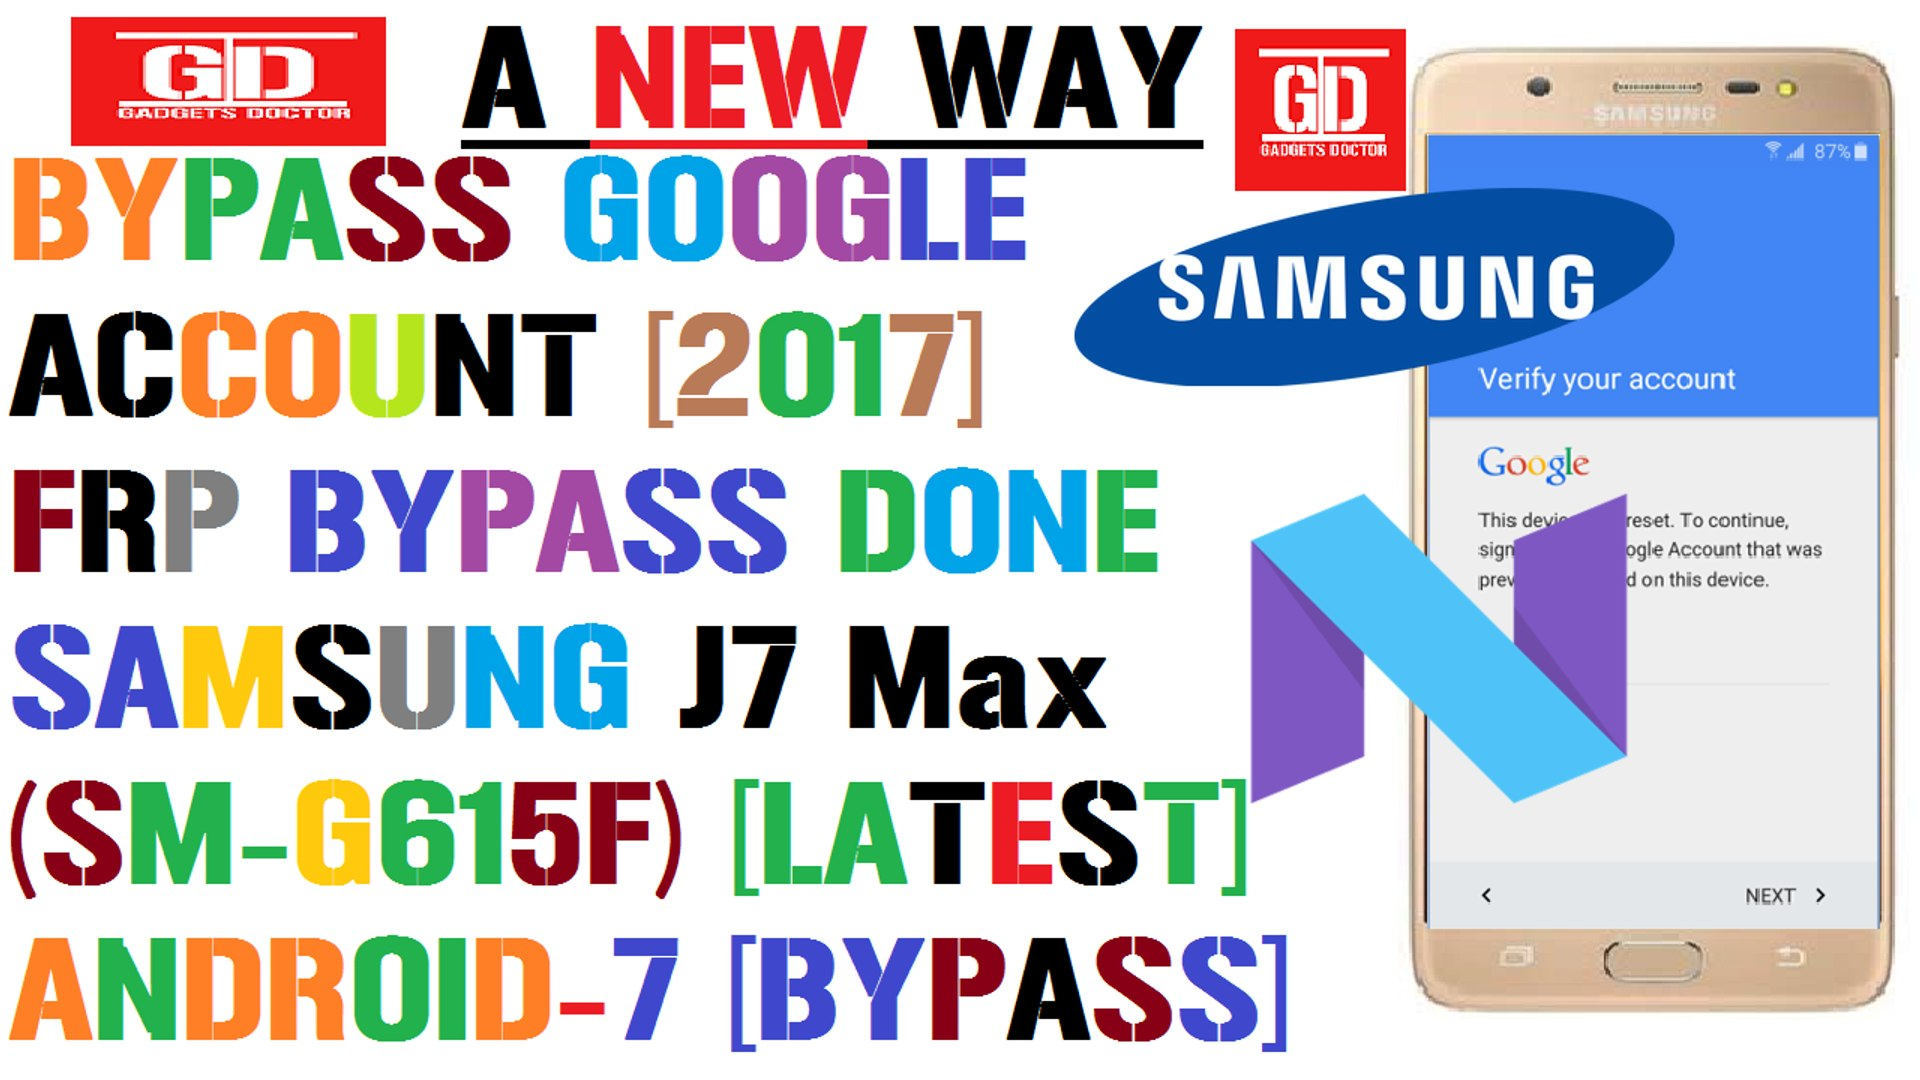 Latest - Bypass Google Account Done On Samsung J7 Max Sm-G615F Android-7  -2017